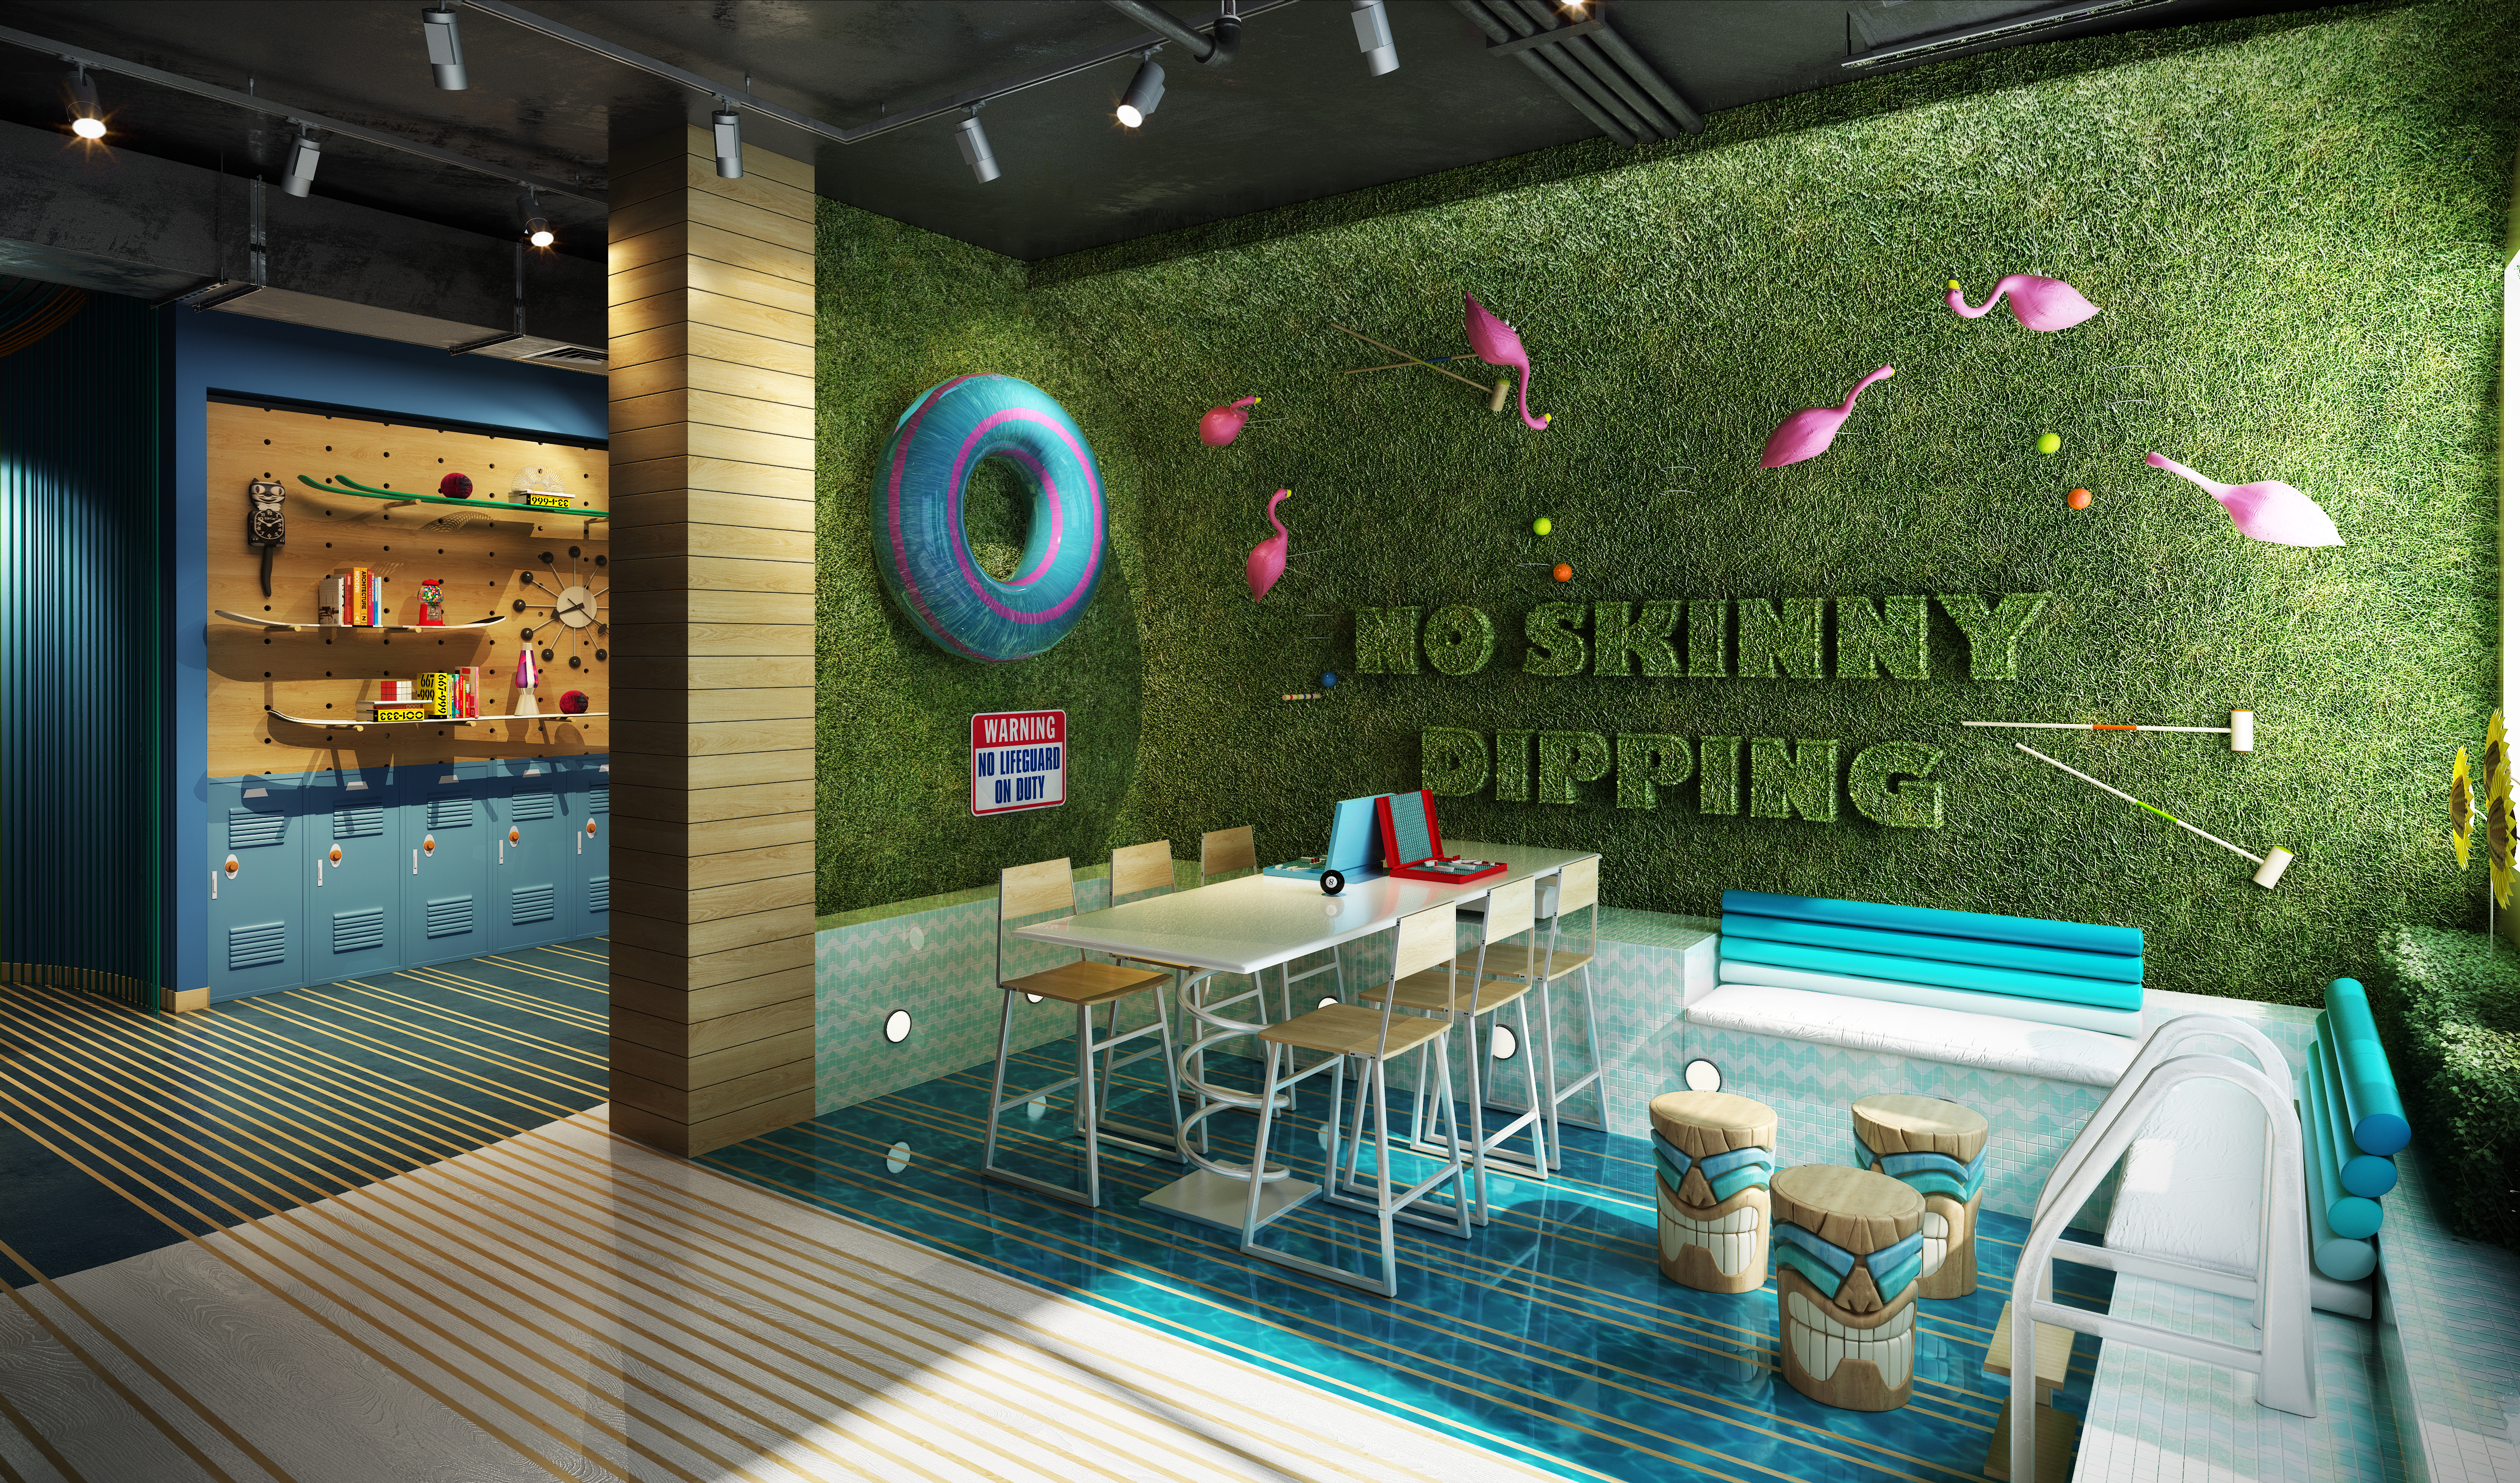 Portraying modern nostalgia, the space brings together the idea of family fun and adventure–triggering memories of going to the pool as a kid, camping with family and cross-country road trips.